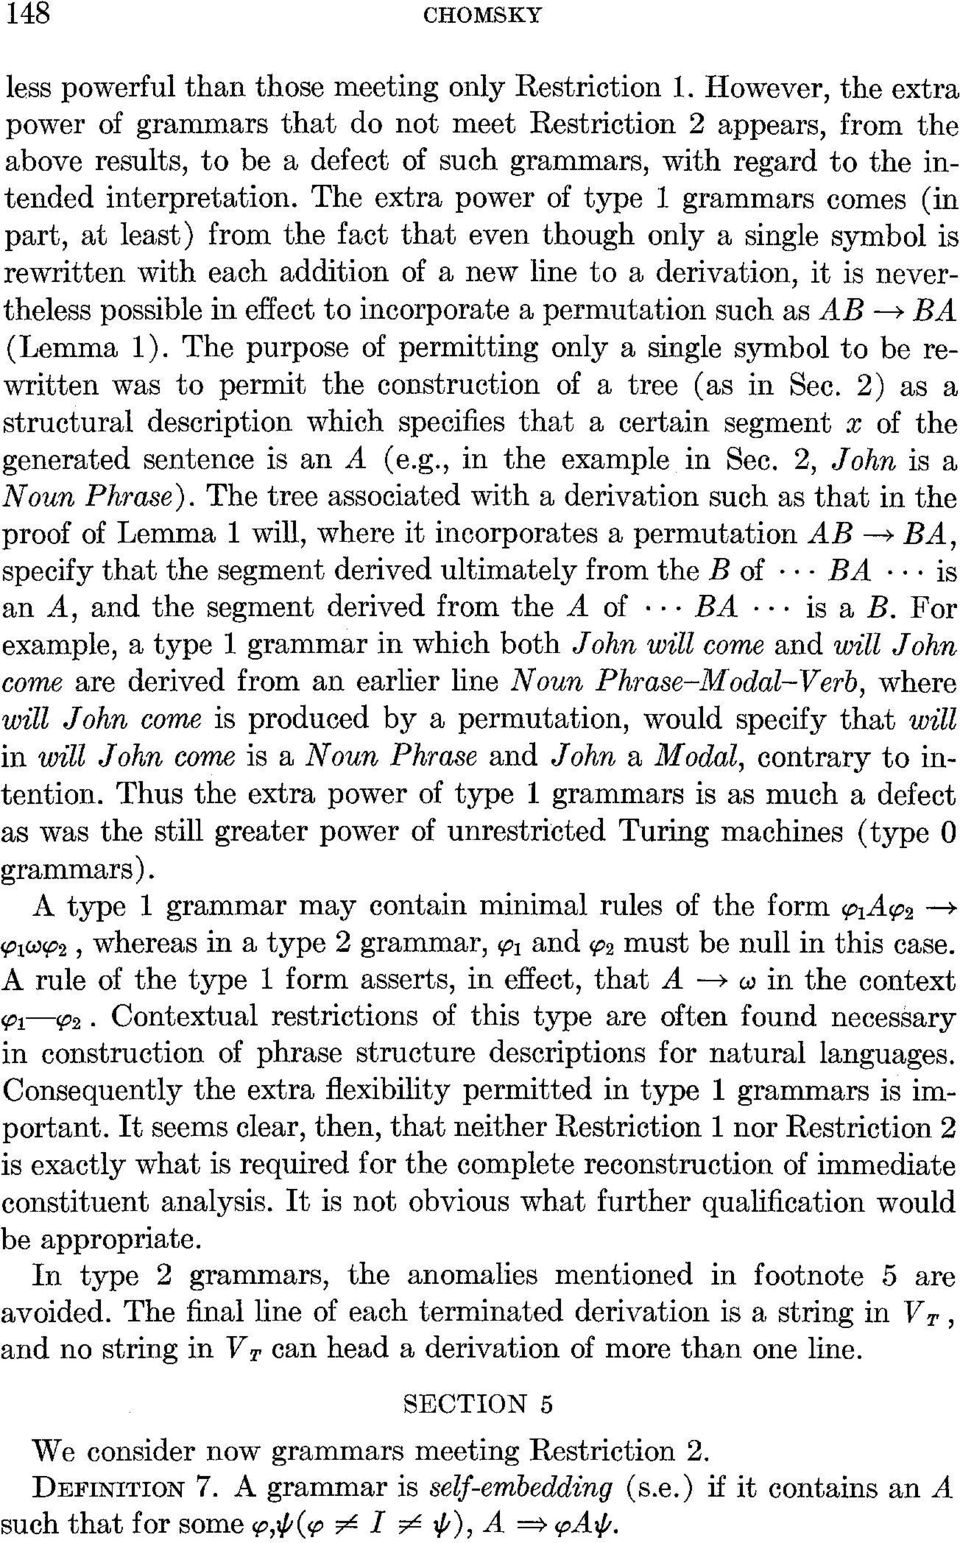 The extra power of type 1 grammars comes (in part, at least) from the fact that even though only a single symbol is rewritten with each addition of a new line to a derivation, it is nevertheless